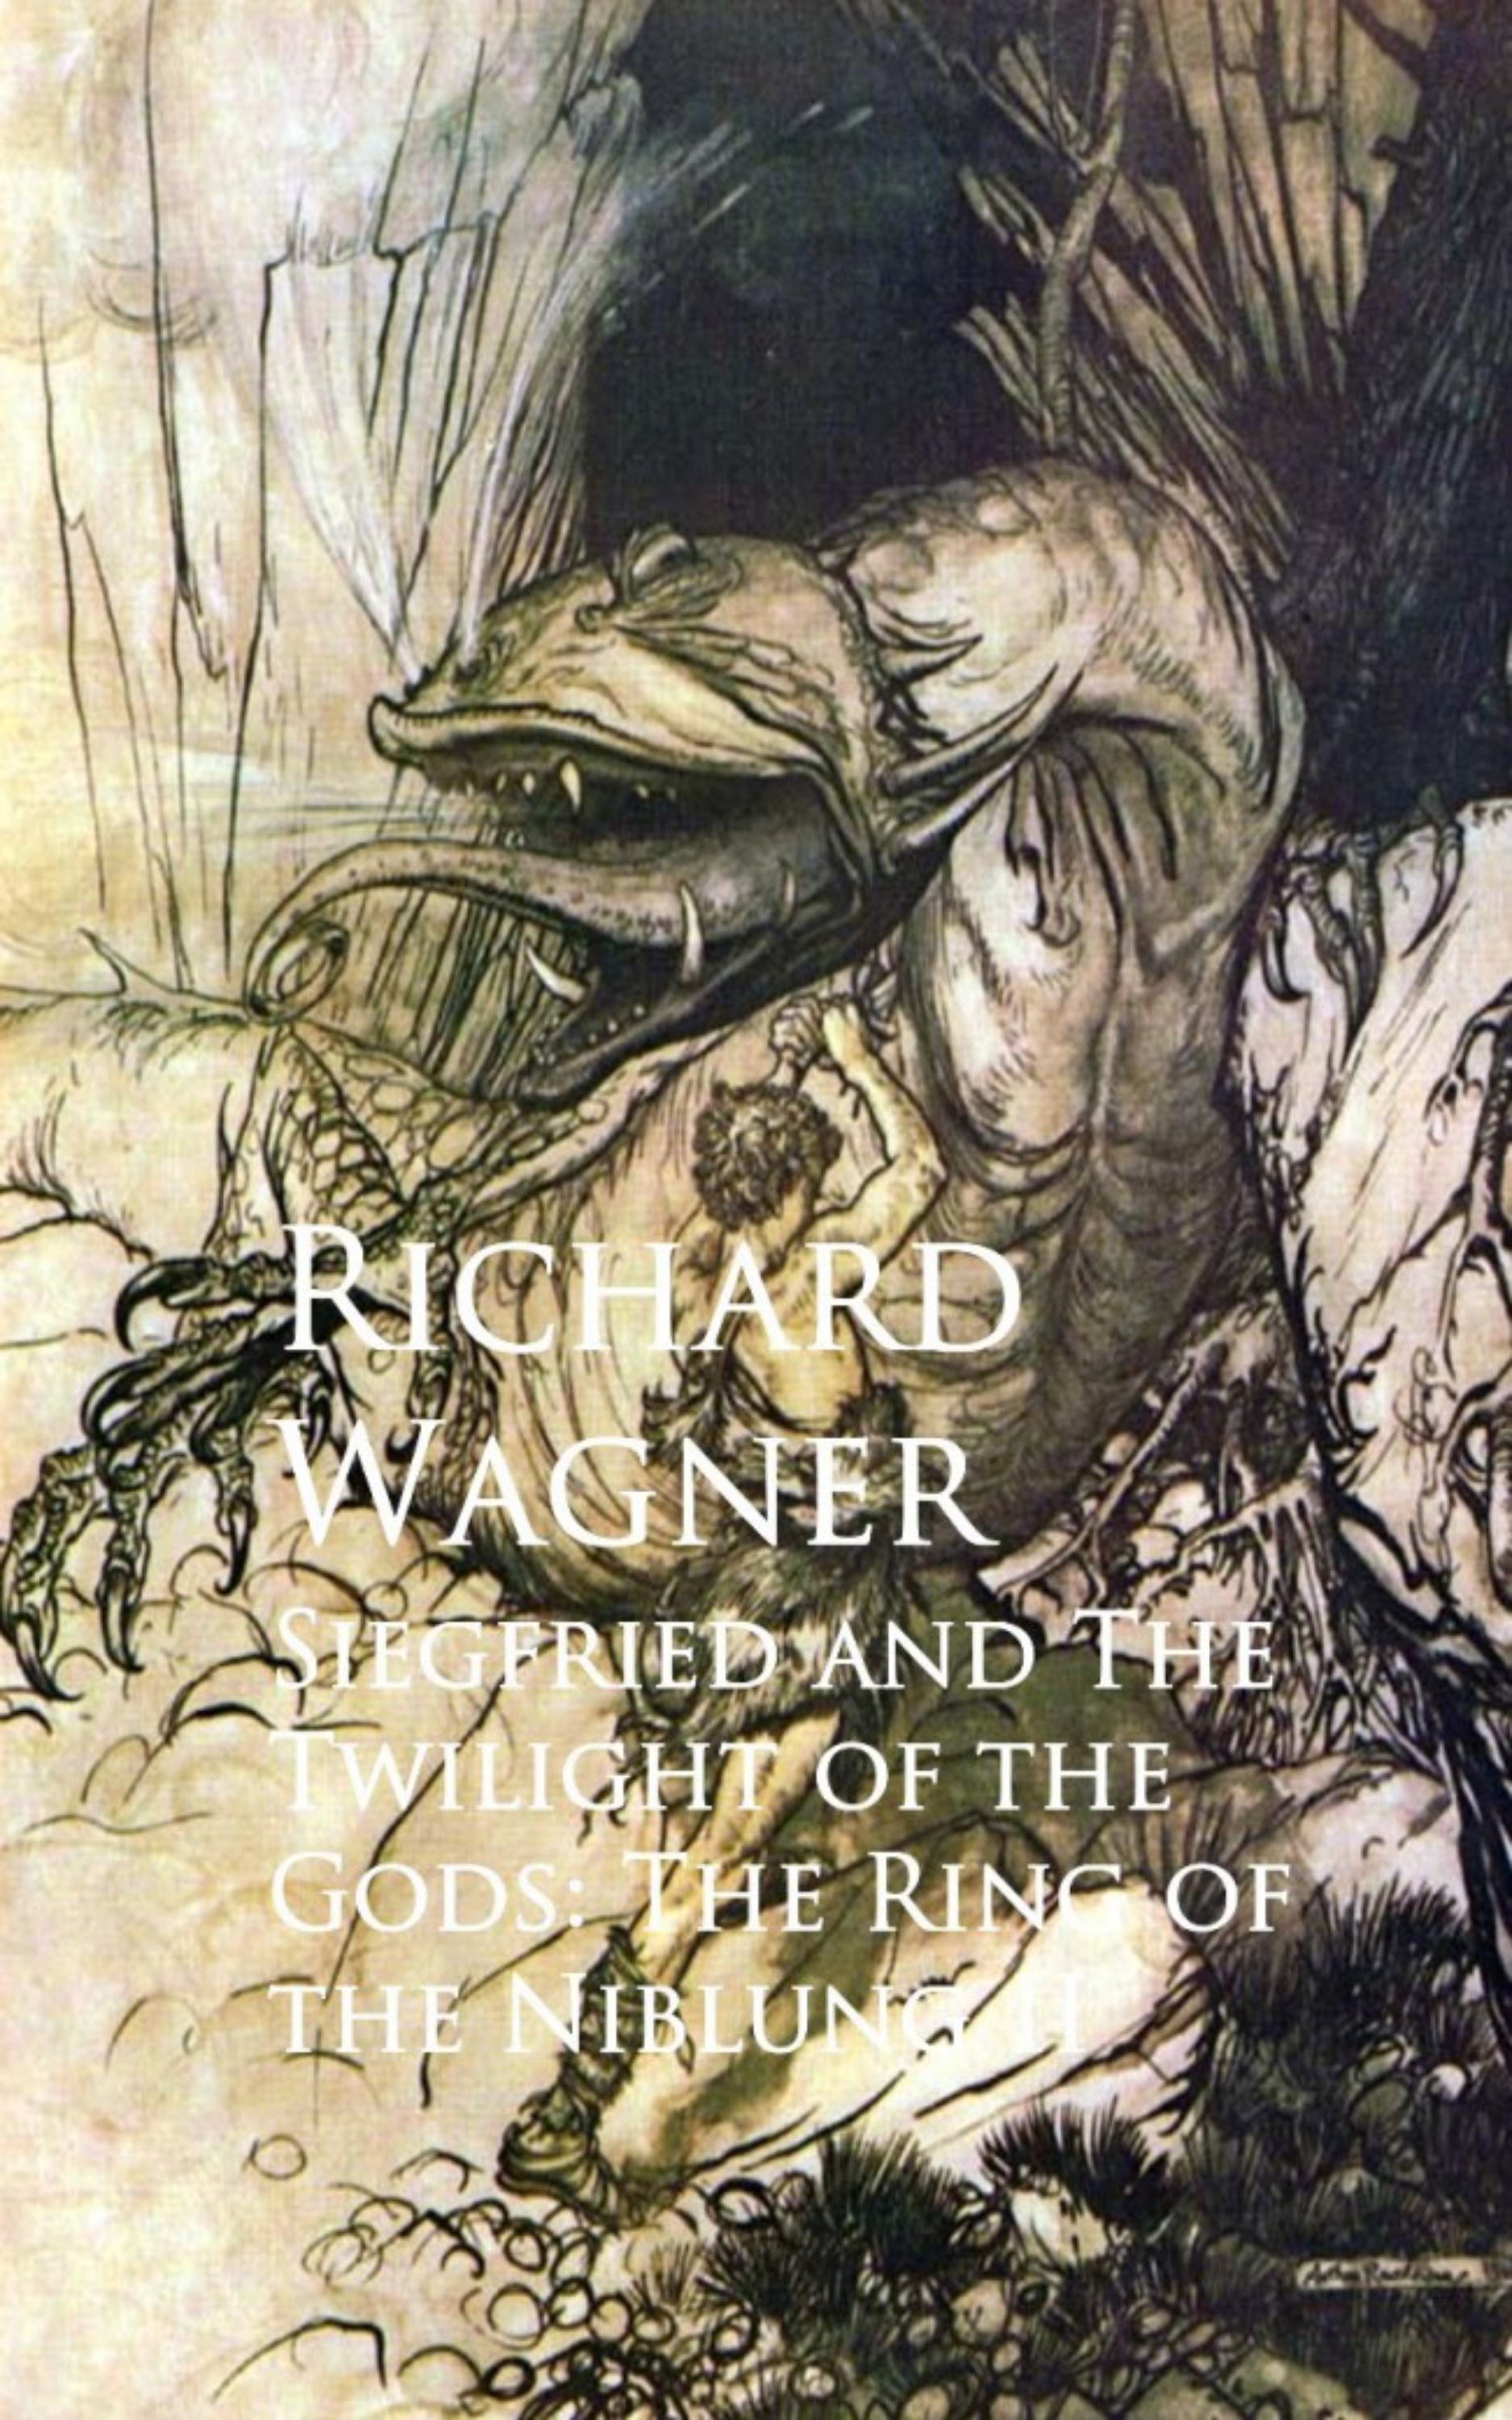 Фото - Richard Wagner Siegfried and The Twilight of the Gods: The Ring of the Niblung II m guizot history of richard cromwell and the restoration of charles ii volume 2